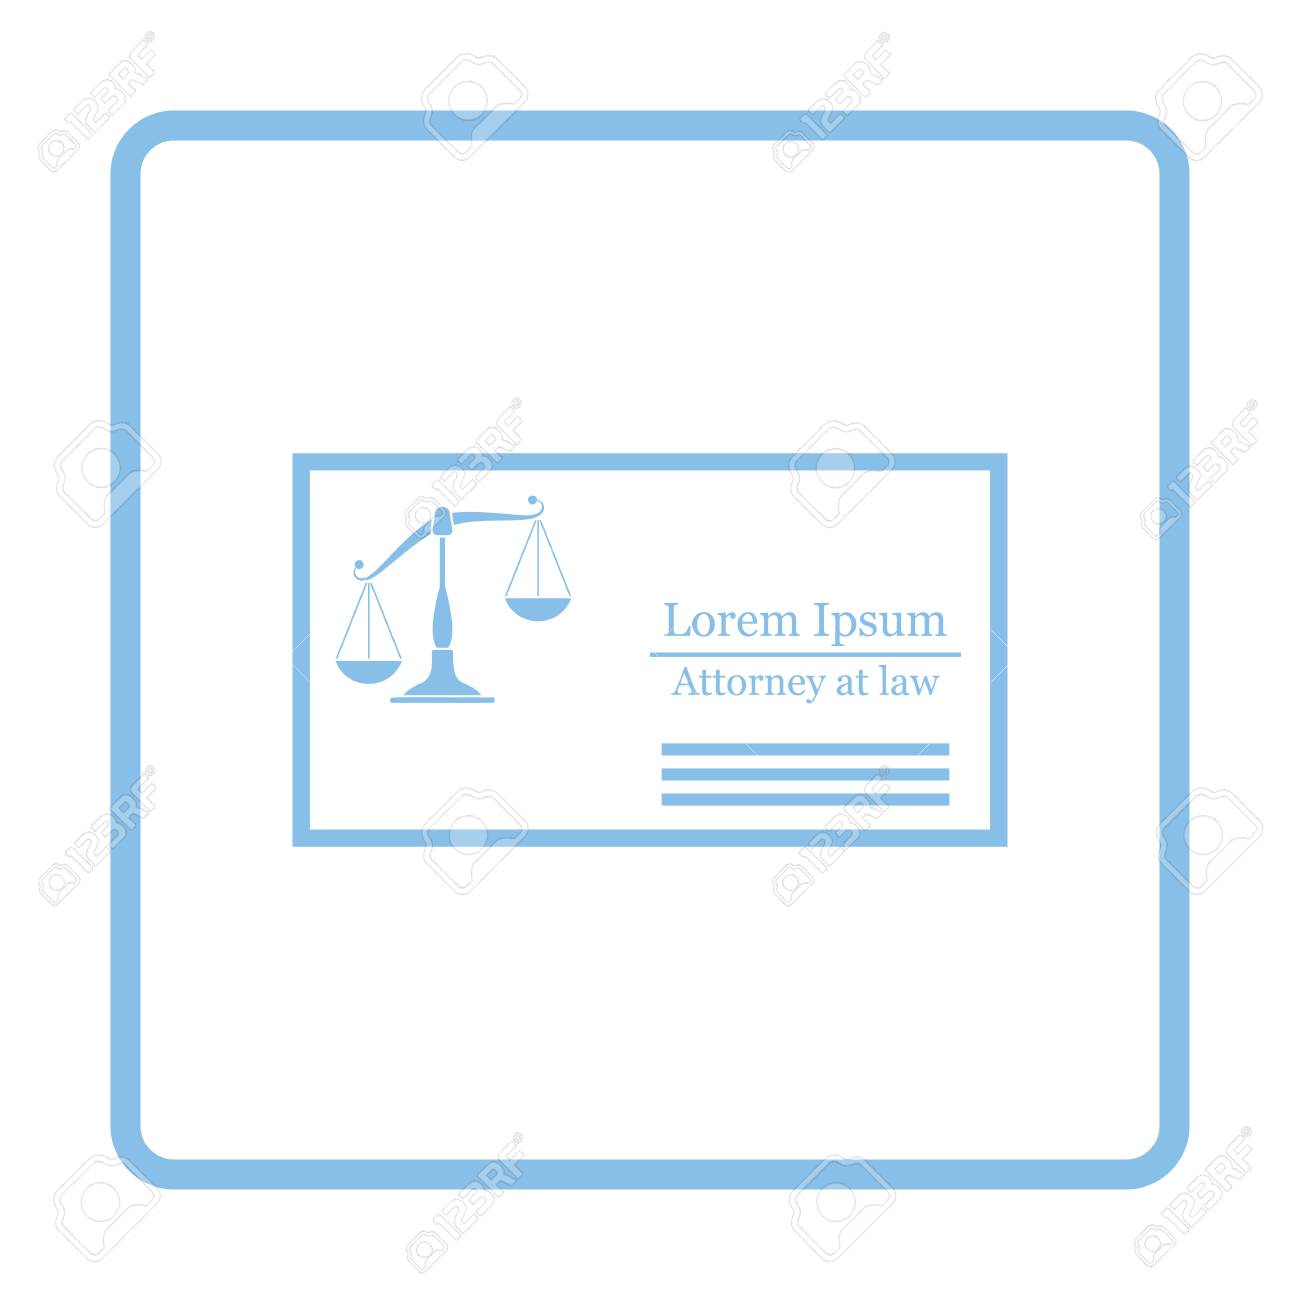 Lawyer business card icon blue frame design vector illustration lawyer business card icon blue frame design vector illustration imagens 70447633 reheart Gallery